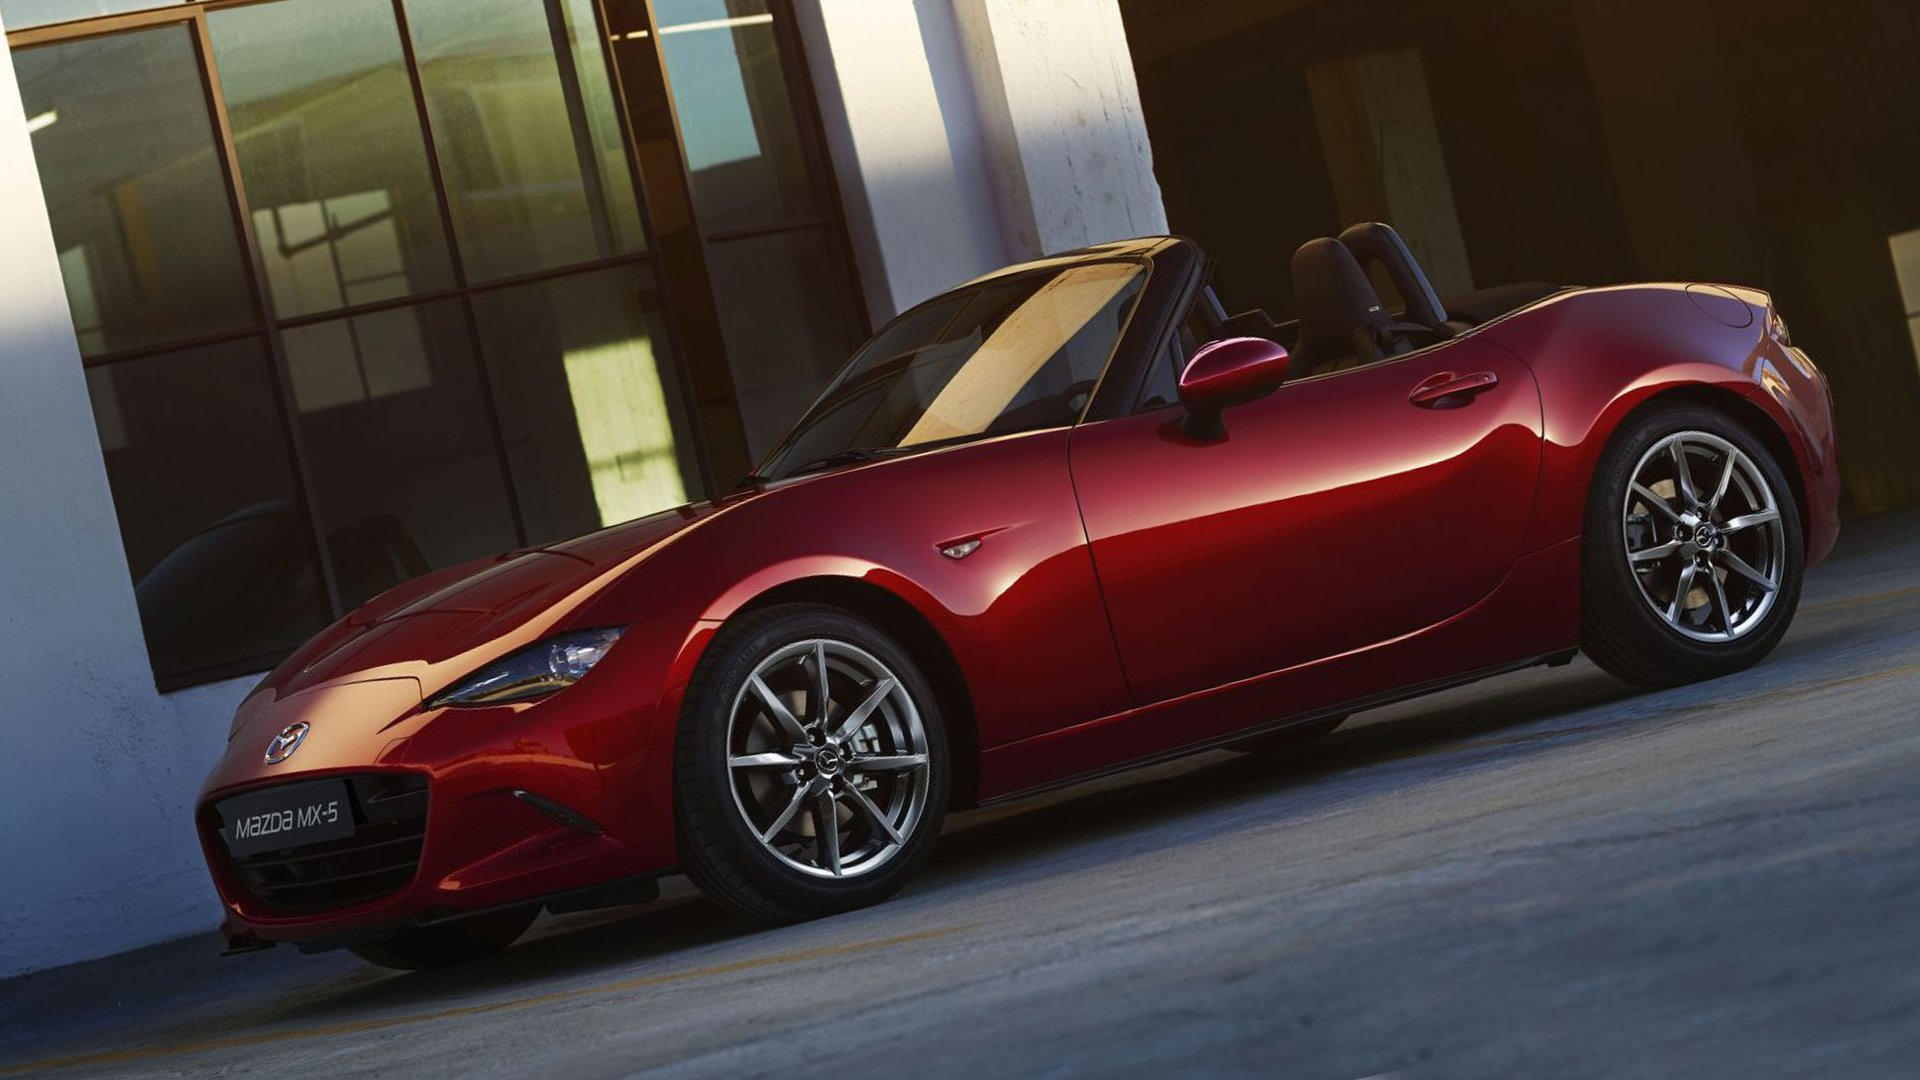 Prototype Specs New 2019 Mazda MX-5 HD